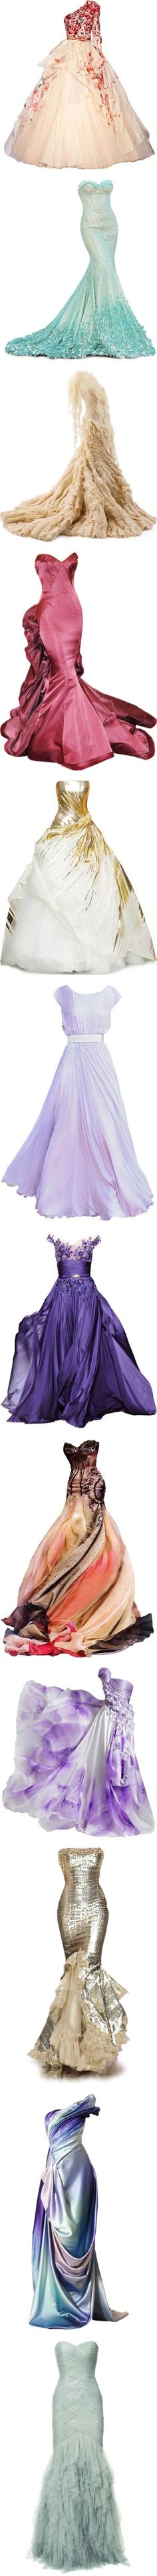 """""""Long Dresses"""" by anime8 ❤ --Beaitiful gowns. I love the first floral gown & the beautiful eighth purple gown."""